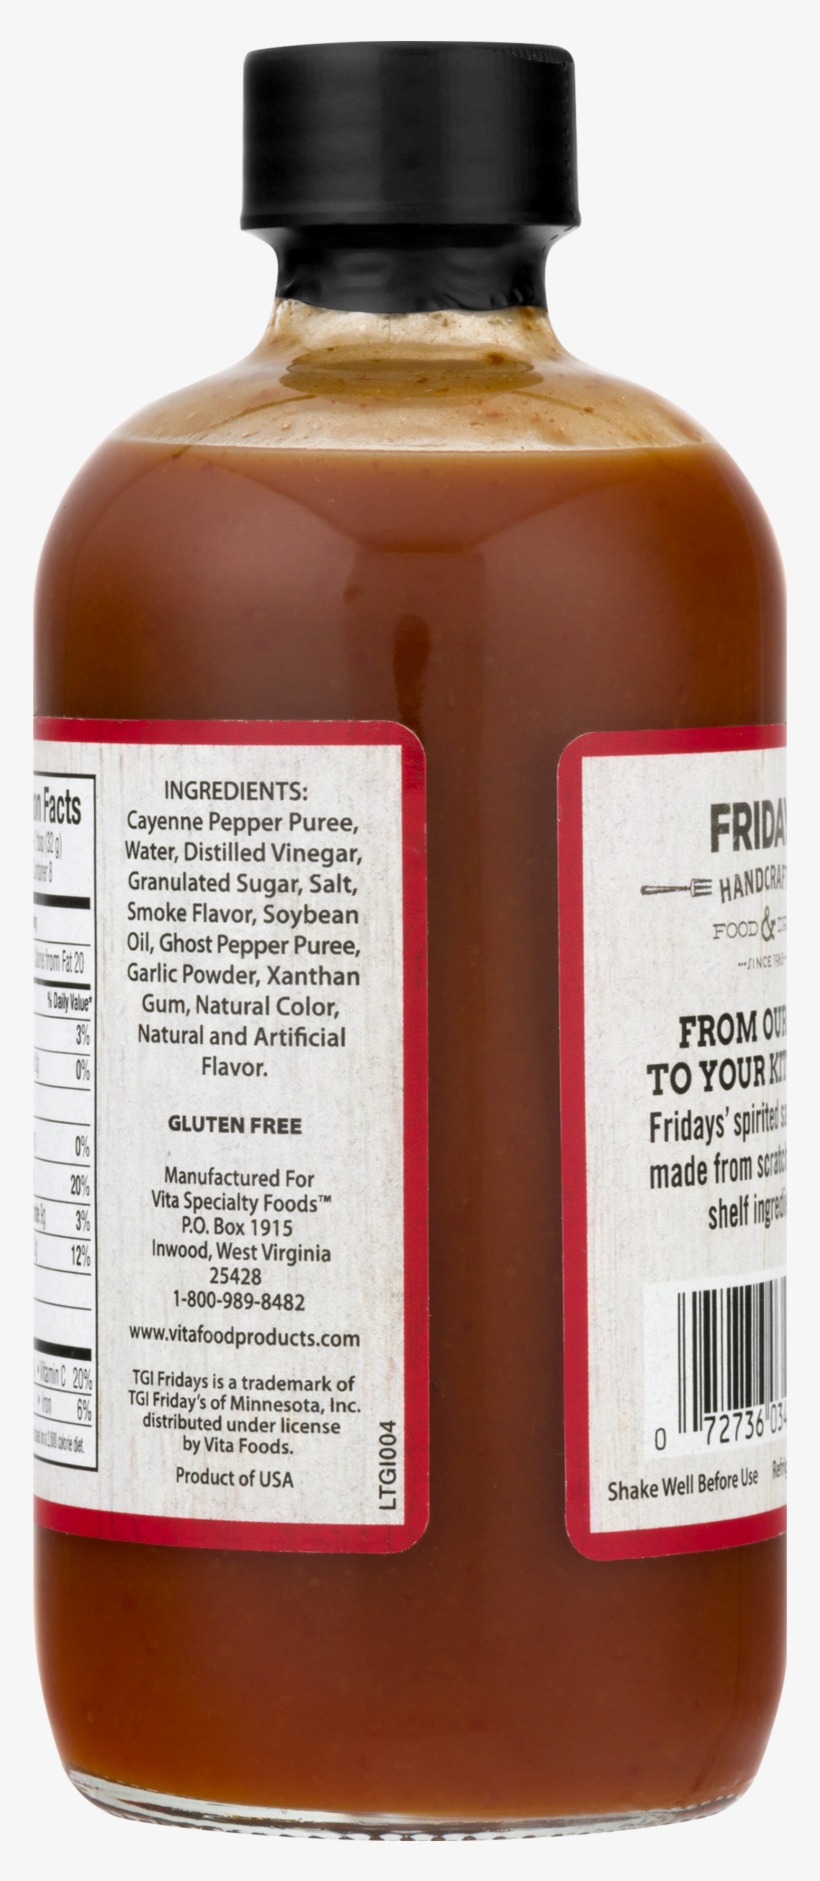 Tgi Friday Ghost Pepper Sauce, - Glass Bottle, transparent png #4618388